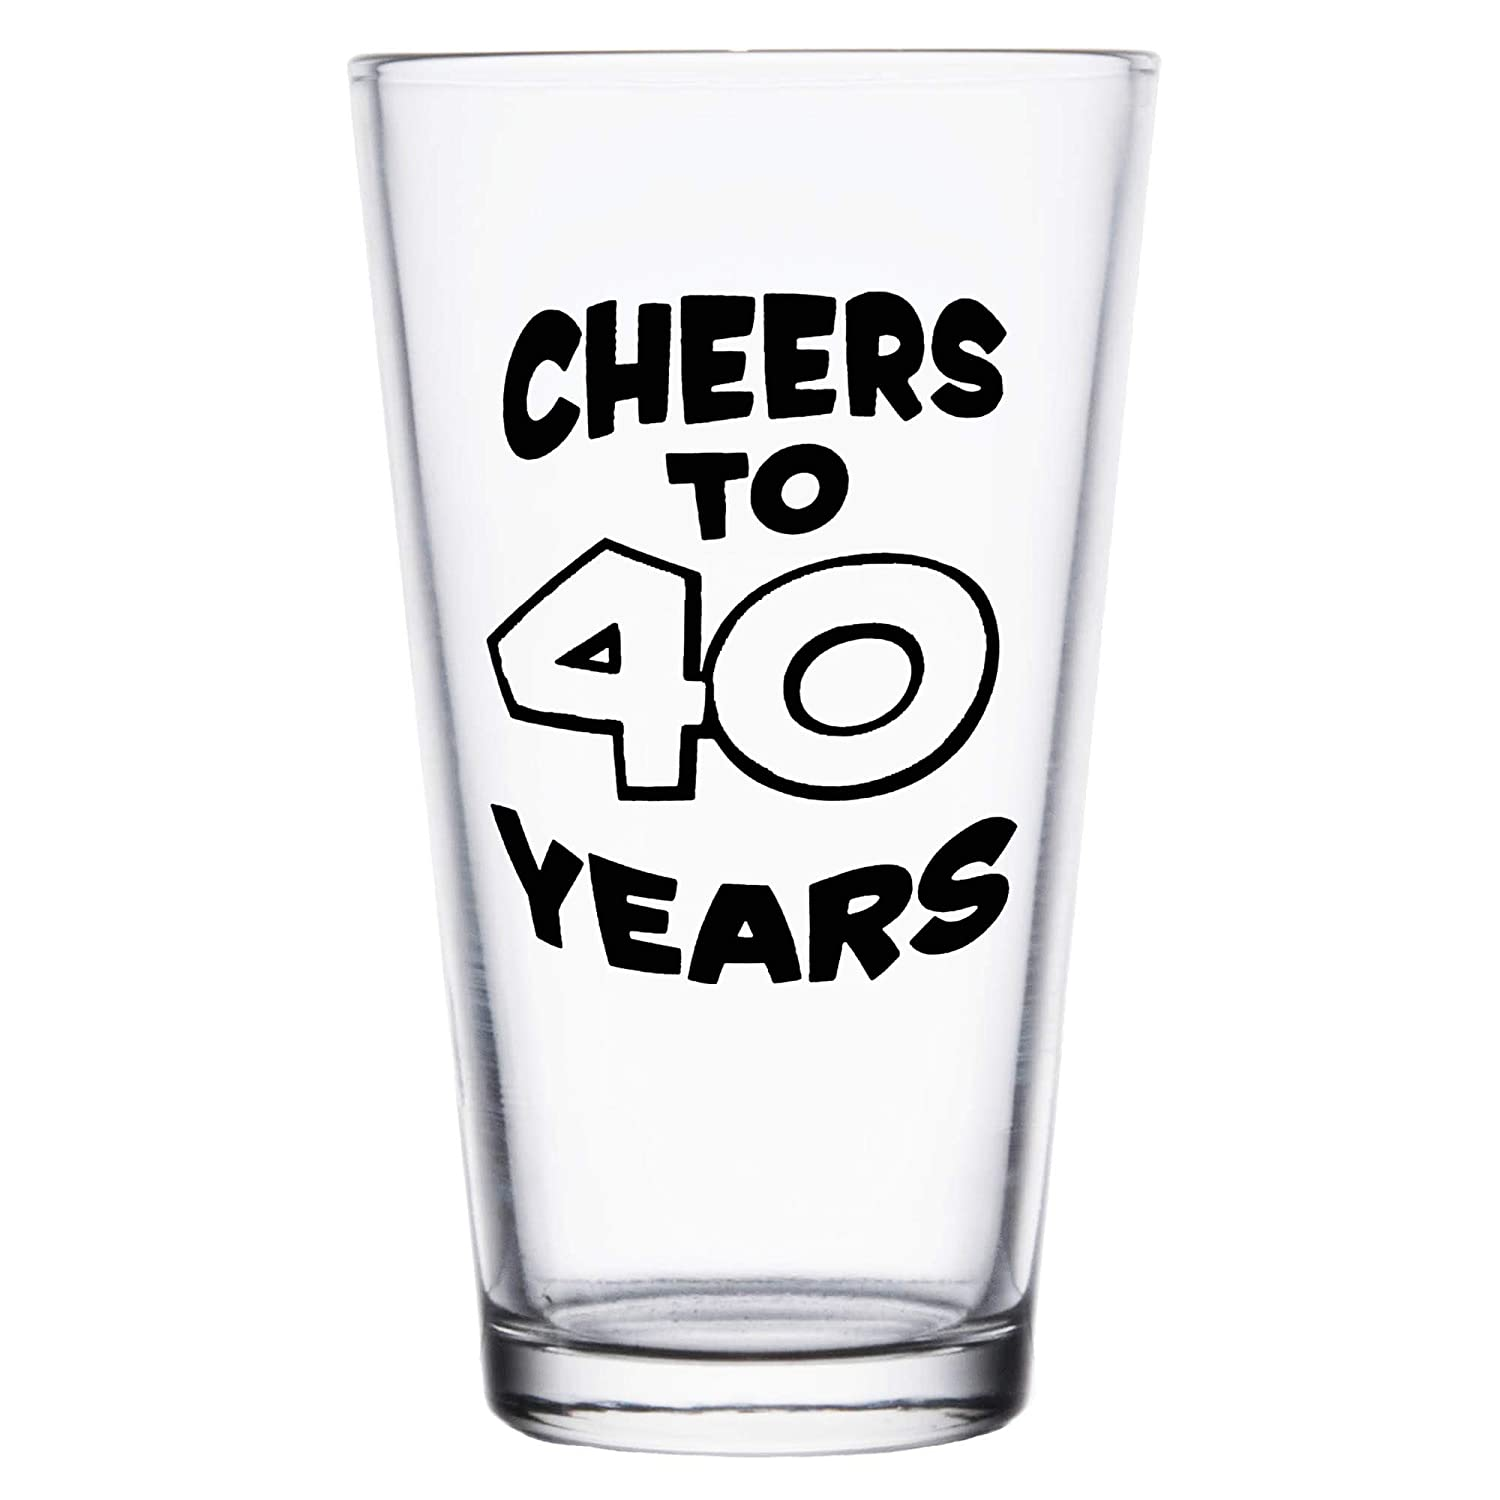 Shop4Ever Cheers To 40 Years Printed Beer Pint Glass ~ 40th Birthday Gift ~ (Black Print) BP_40YrsBLK